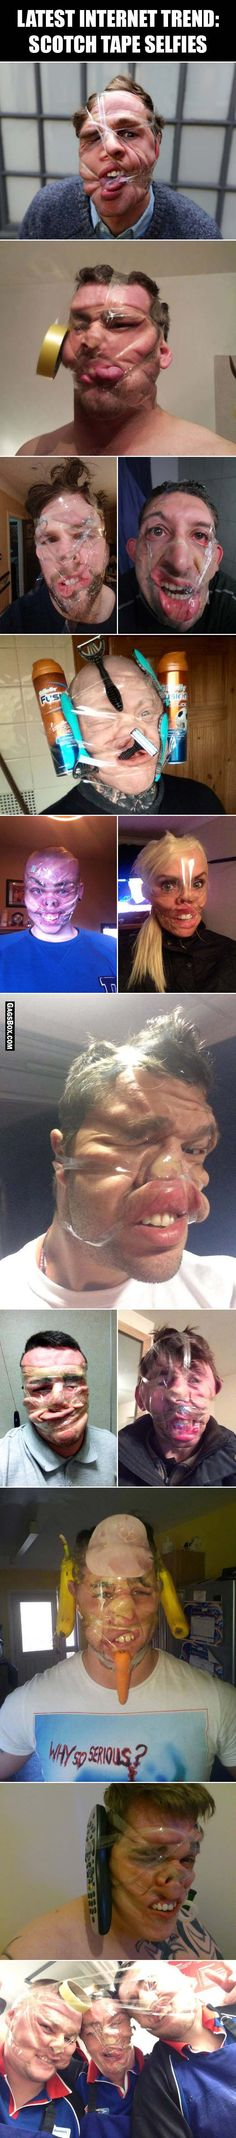 Latest internet trend - scotch tape selfies - #funny, #lol, #fun, #humor, #comics, #meme, #gag, #box, #lolpics, #Funnypics, #GagsBox,